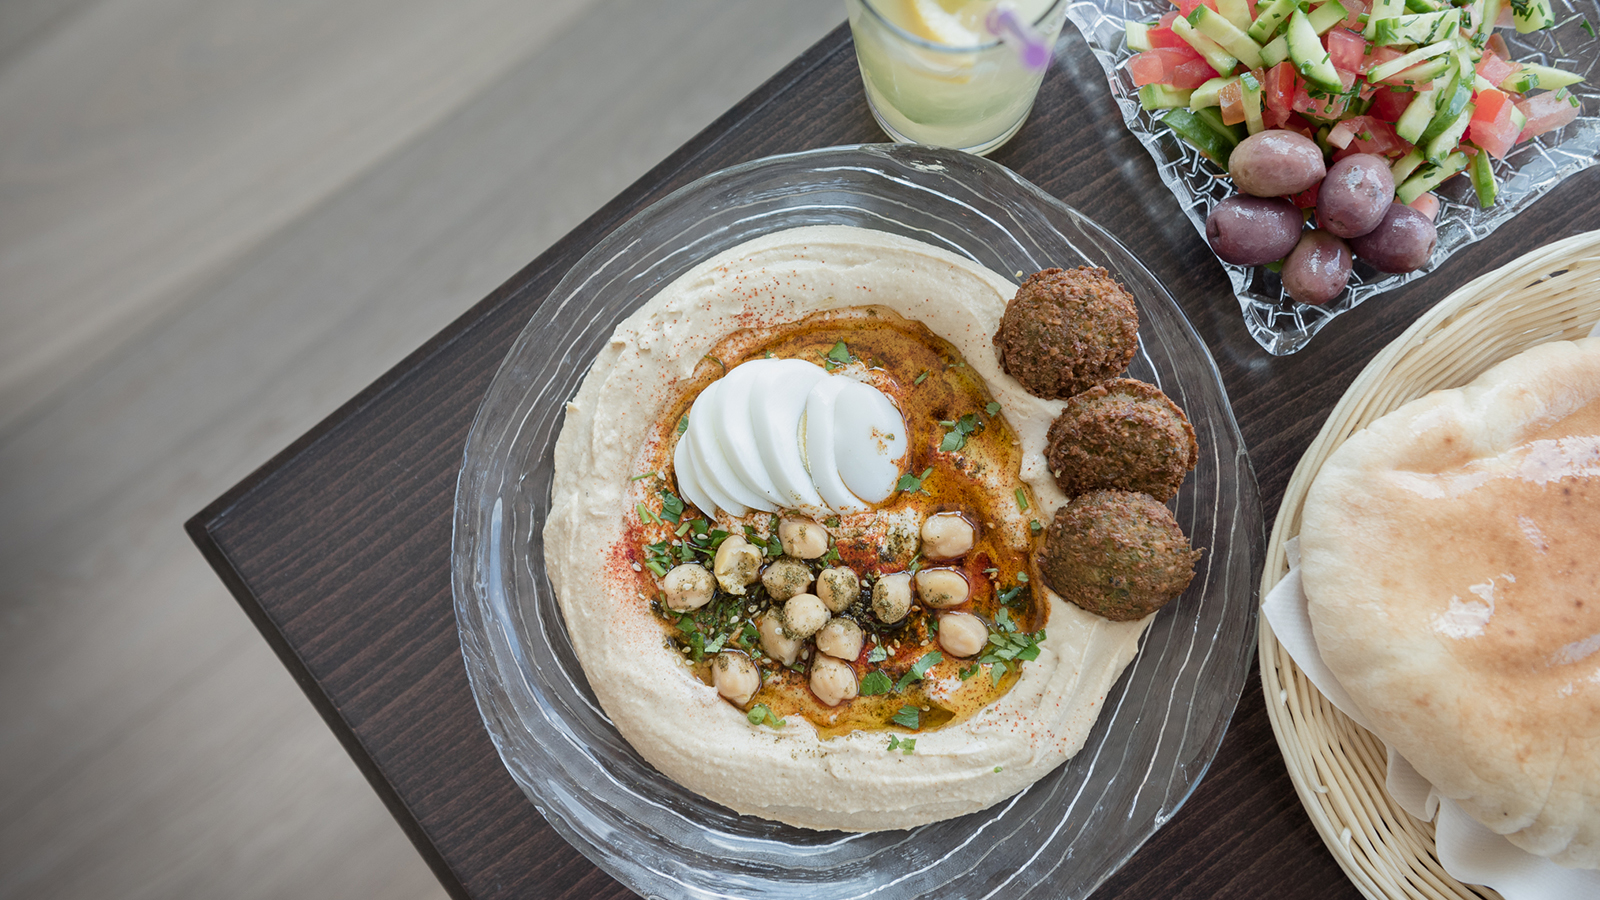 Hummus delight in Tel Aviv